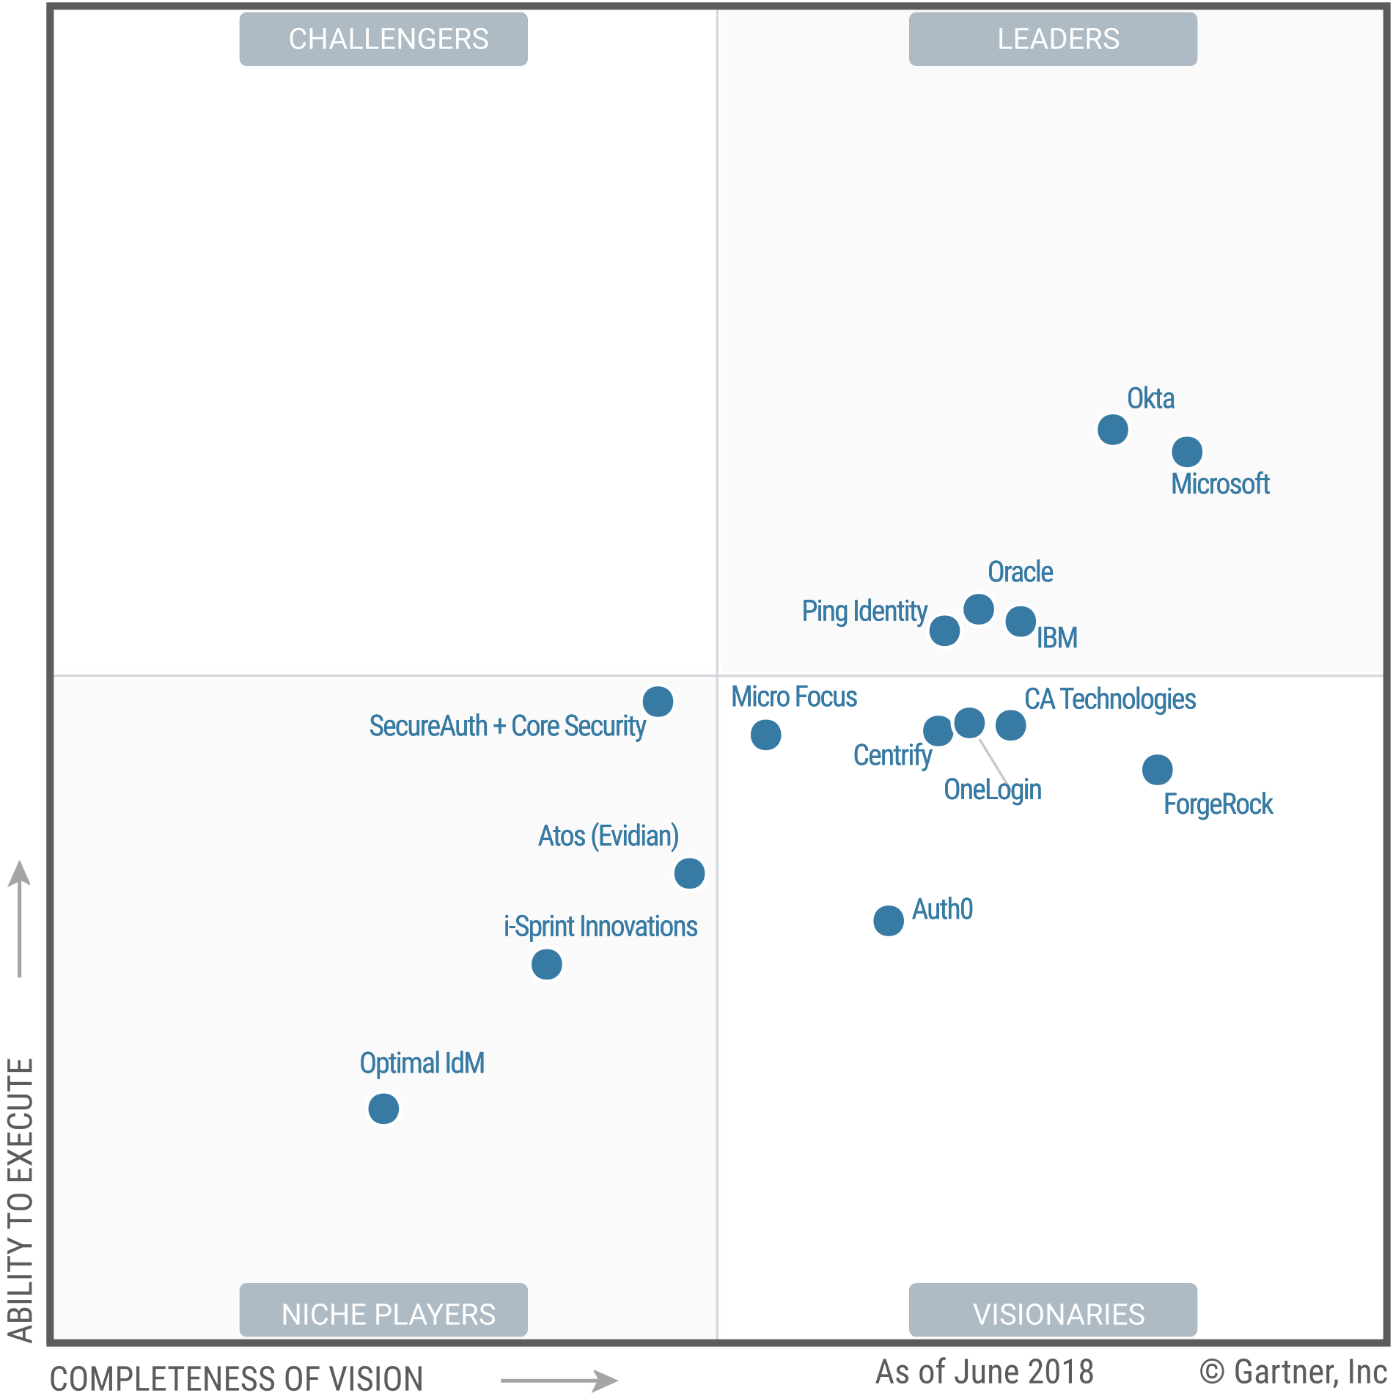 Microsoft nommé leader du Magic Quadrant 2018 sur l'Access